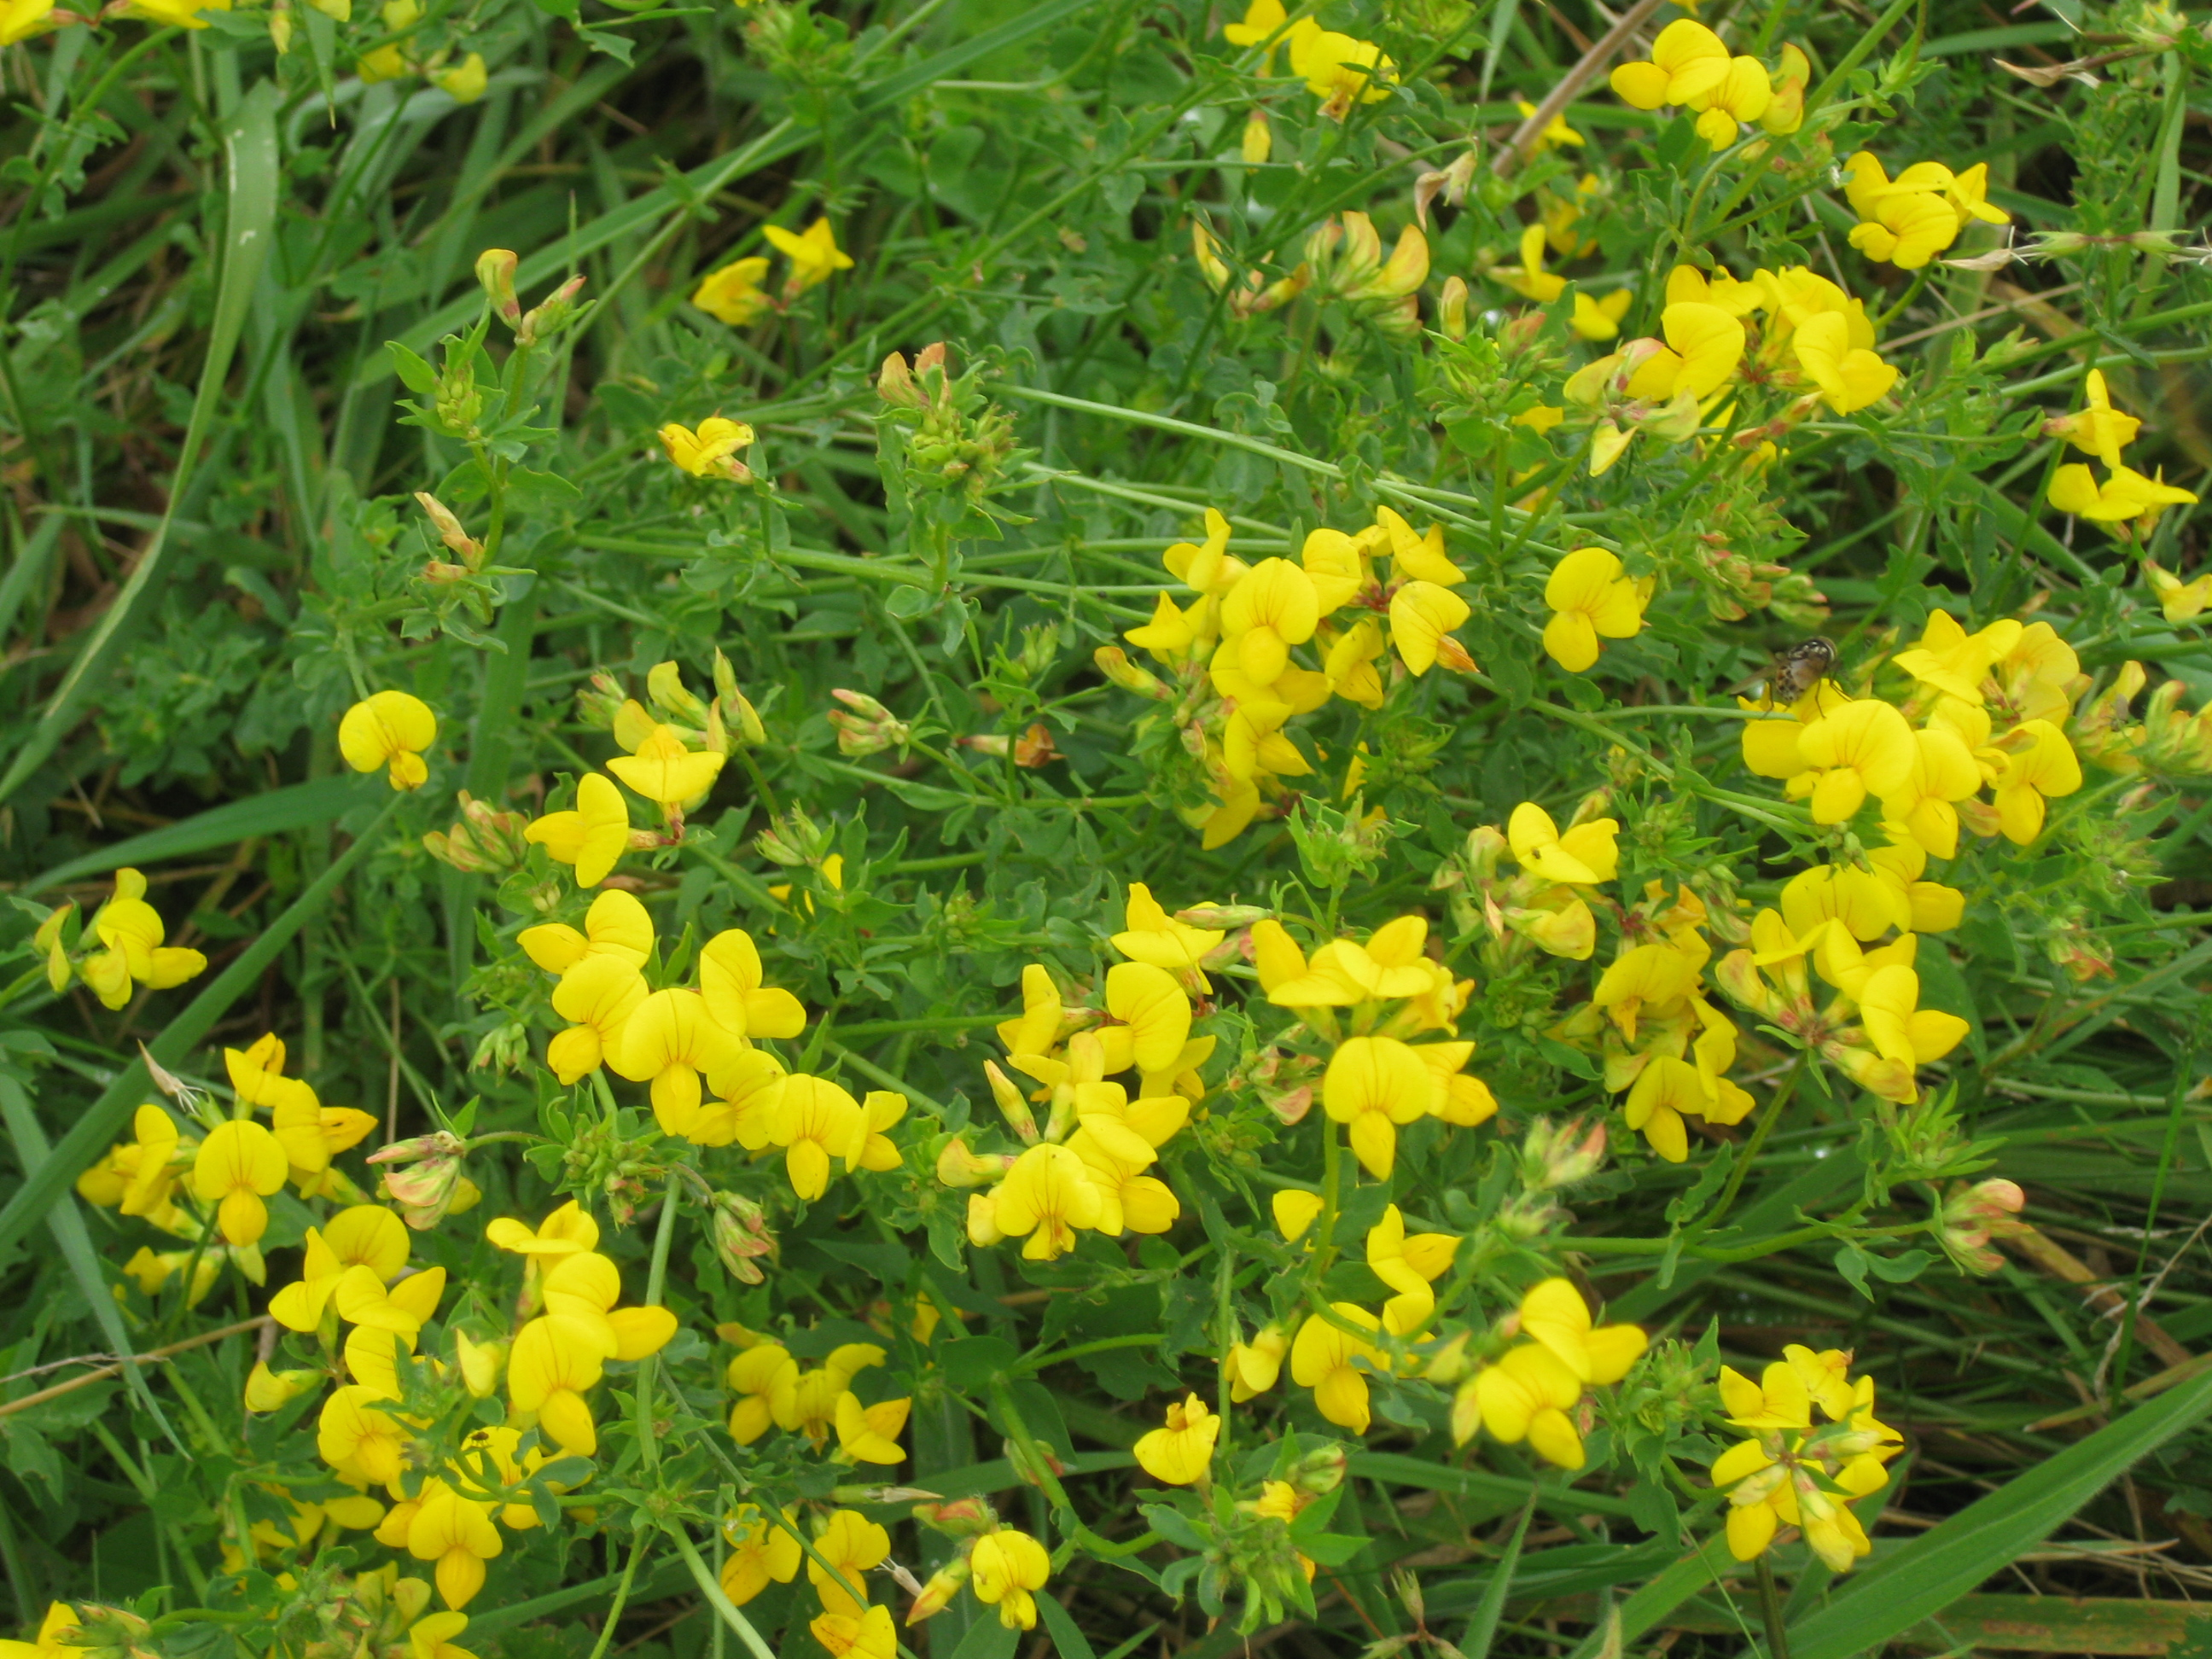 Wildflower wednesday august 2014 the blooming garden i love the frothy yellow flowers of galium verum ladys bedstraw which grows here too it gets its name from the fact that it used to be used as a mightylinksfo